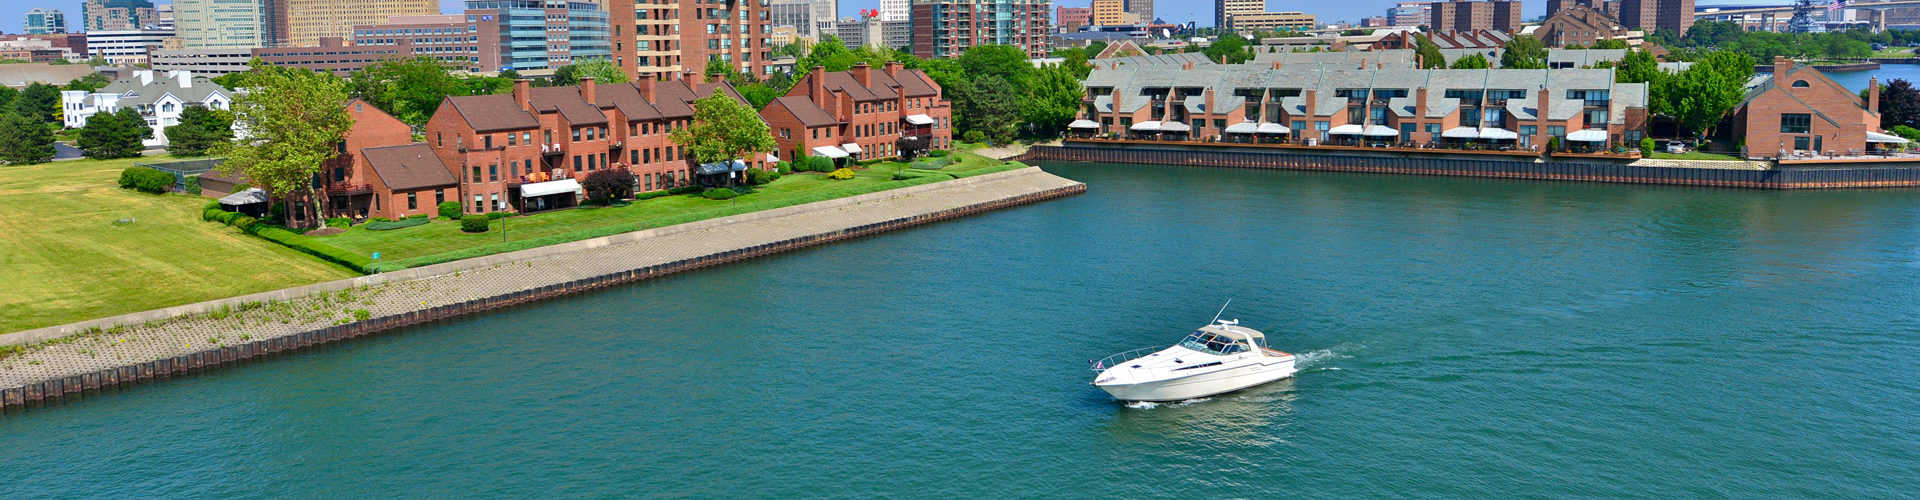 Moving to Upstate New York - Buffalo waterfront